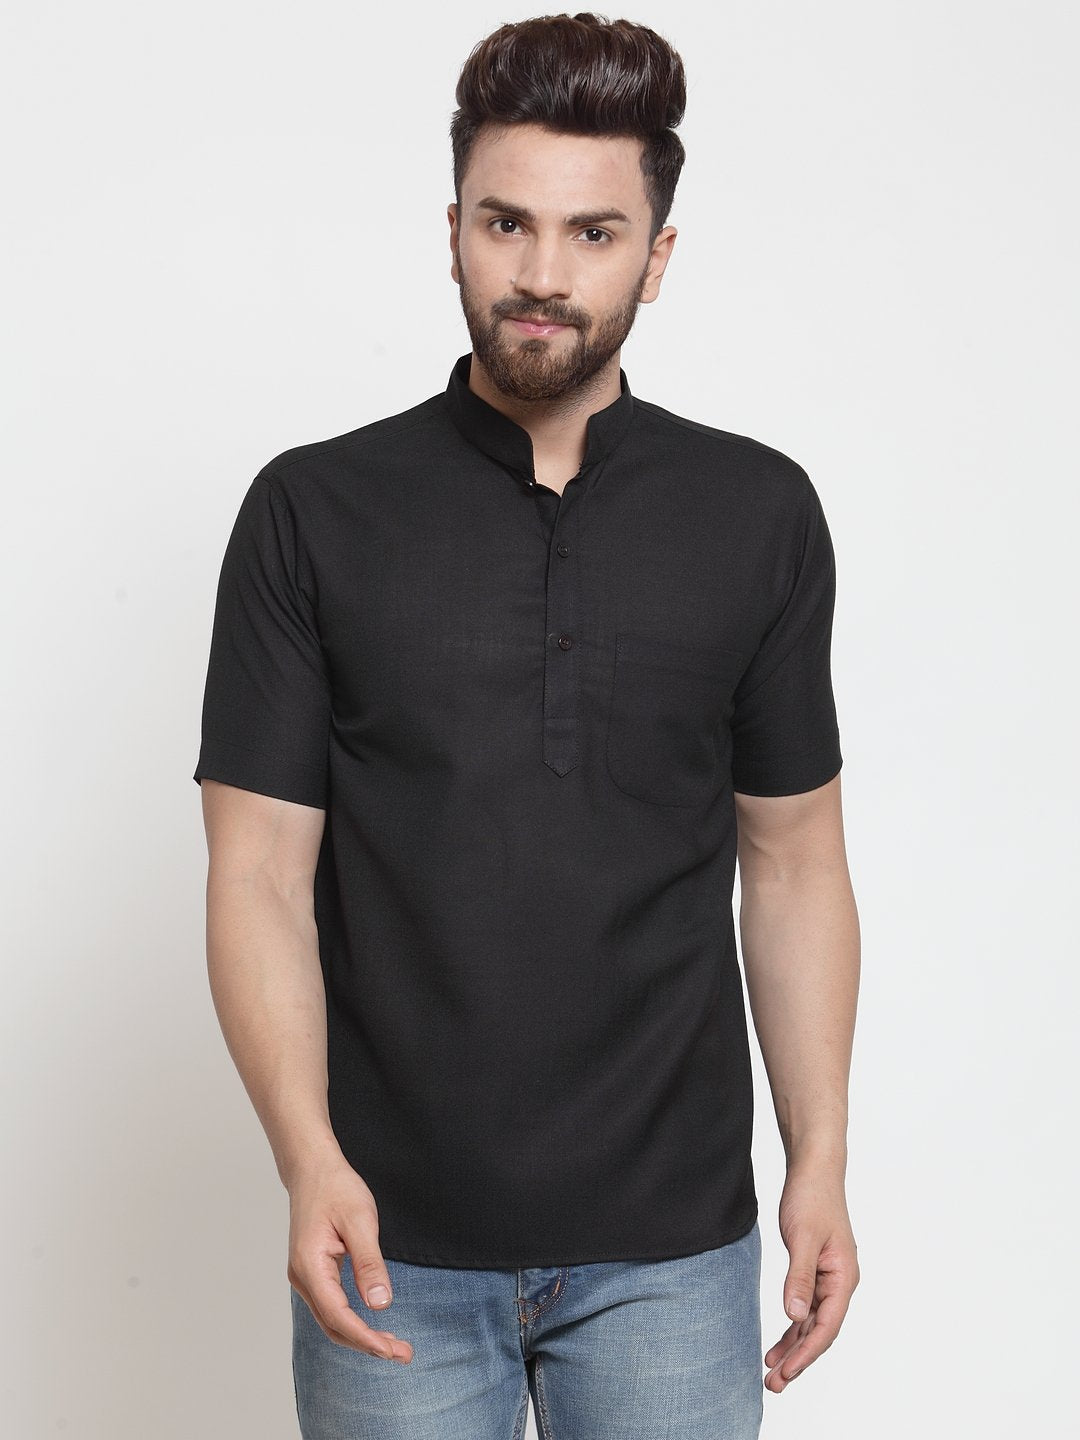 Designer Black Short Lenin Kurta for Men by TREEMODA